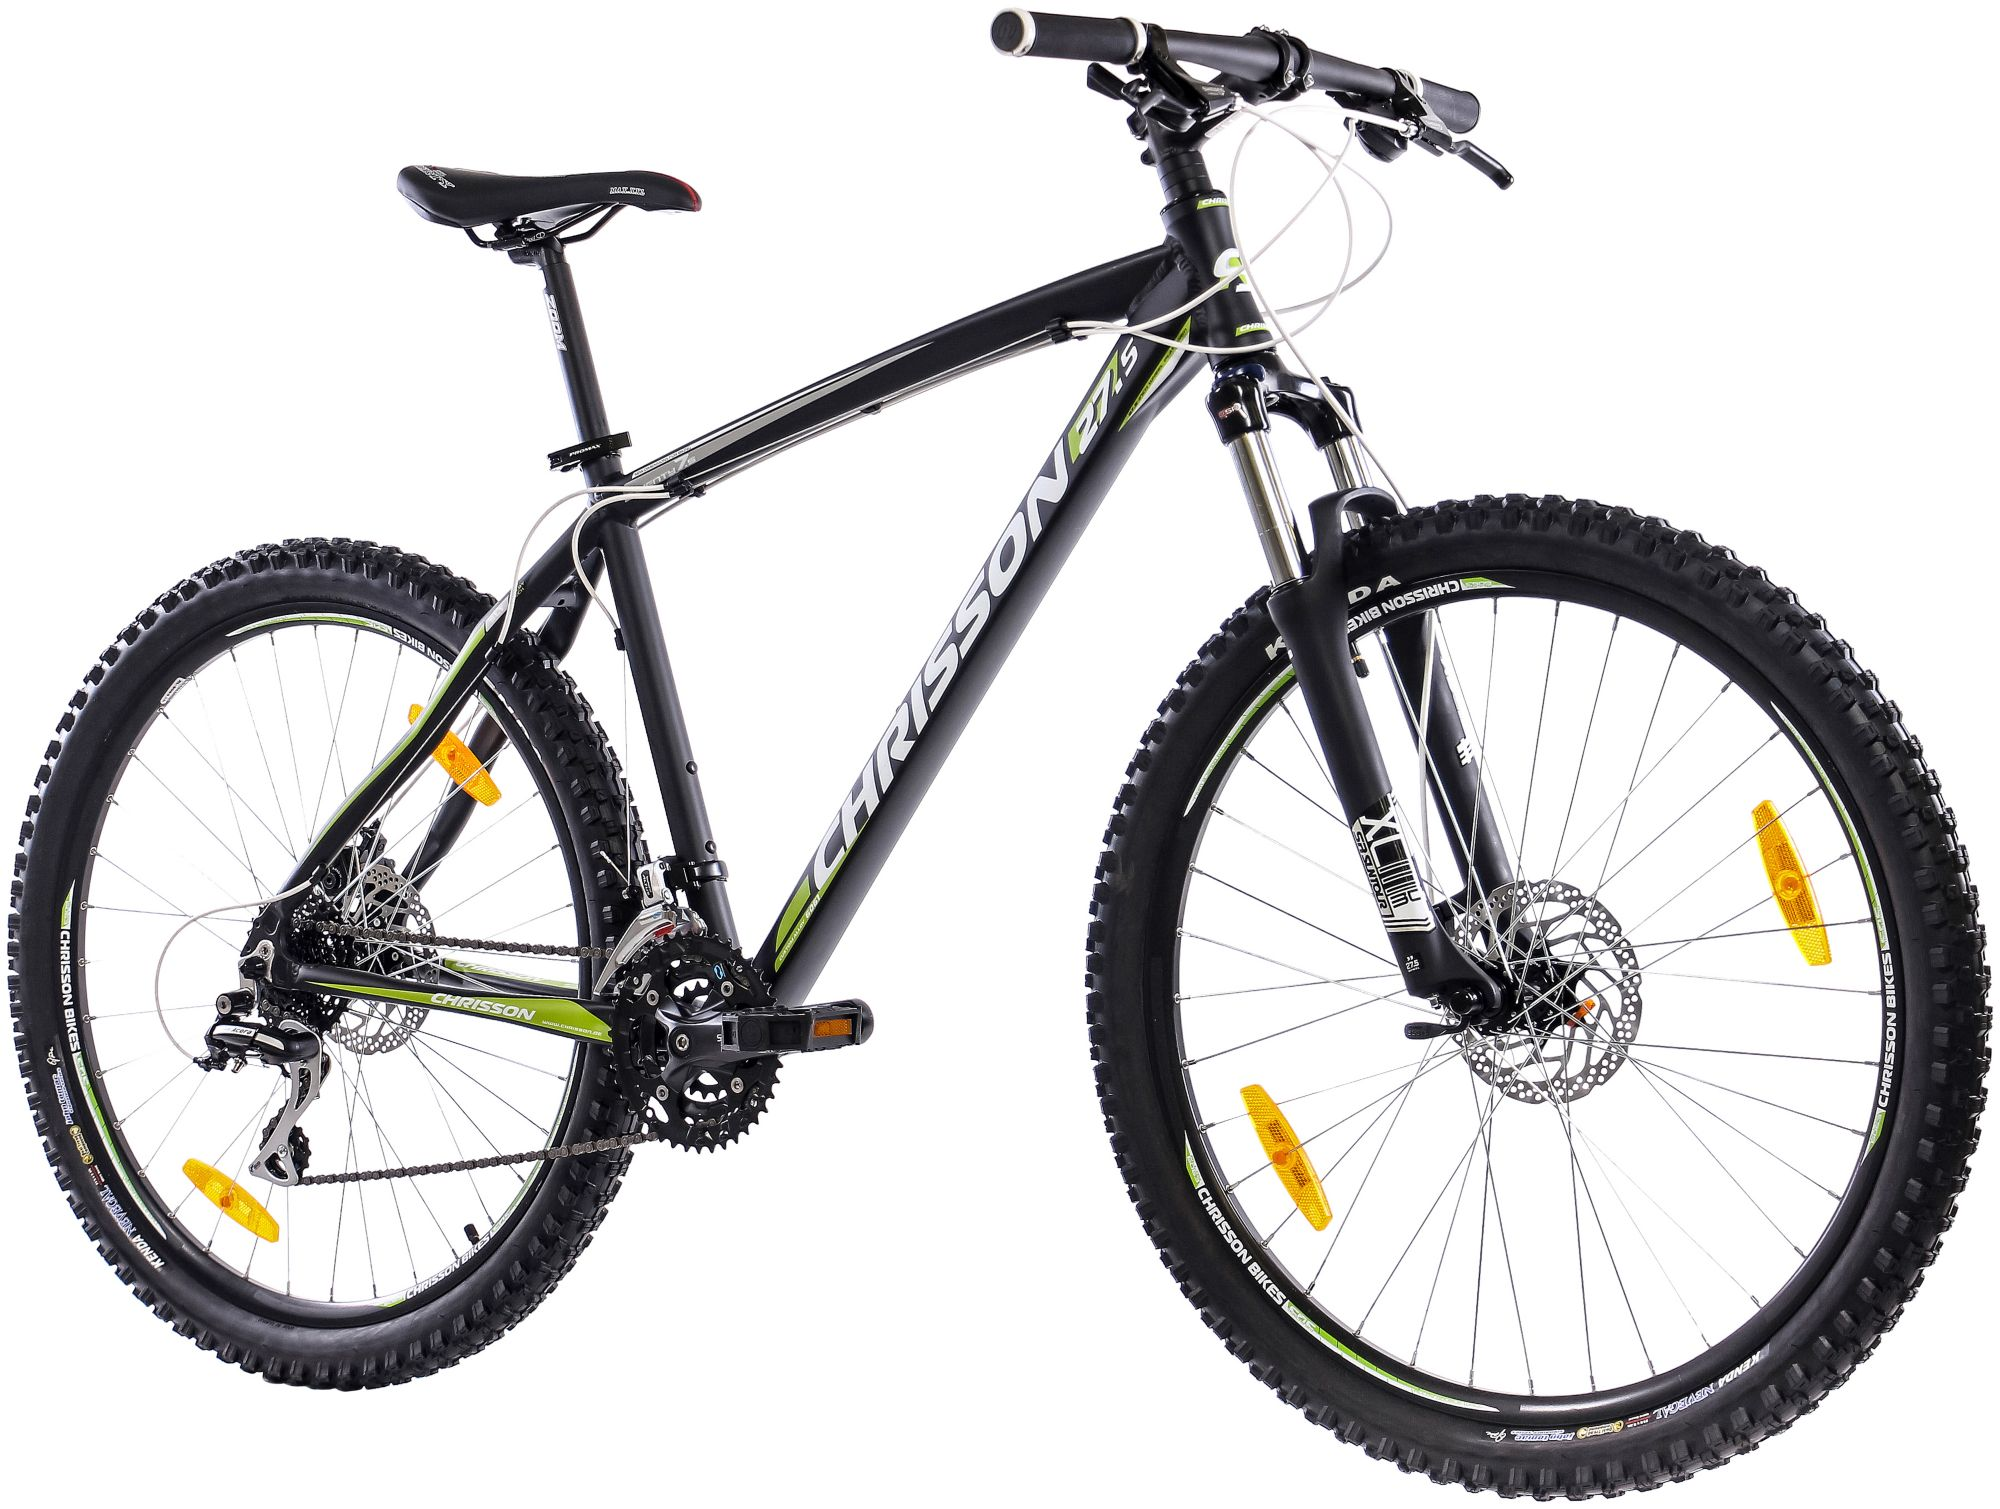 CHRISSON  Mountainbike »Alloy«, 27,5 Zoll, 24 Gang, Scheibenbremsen